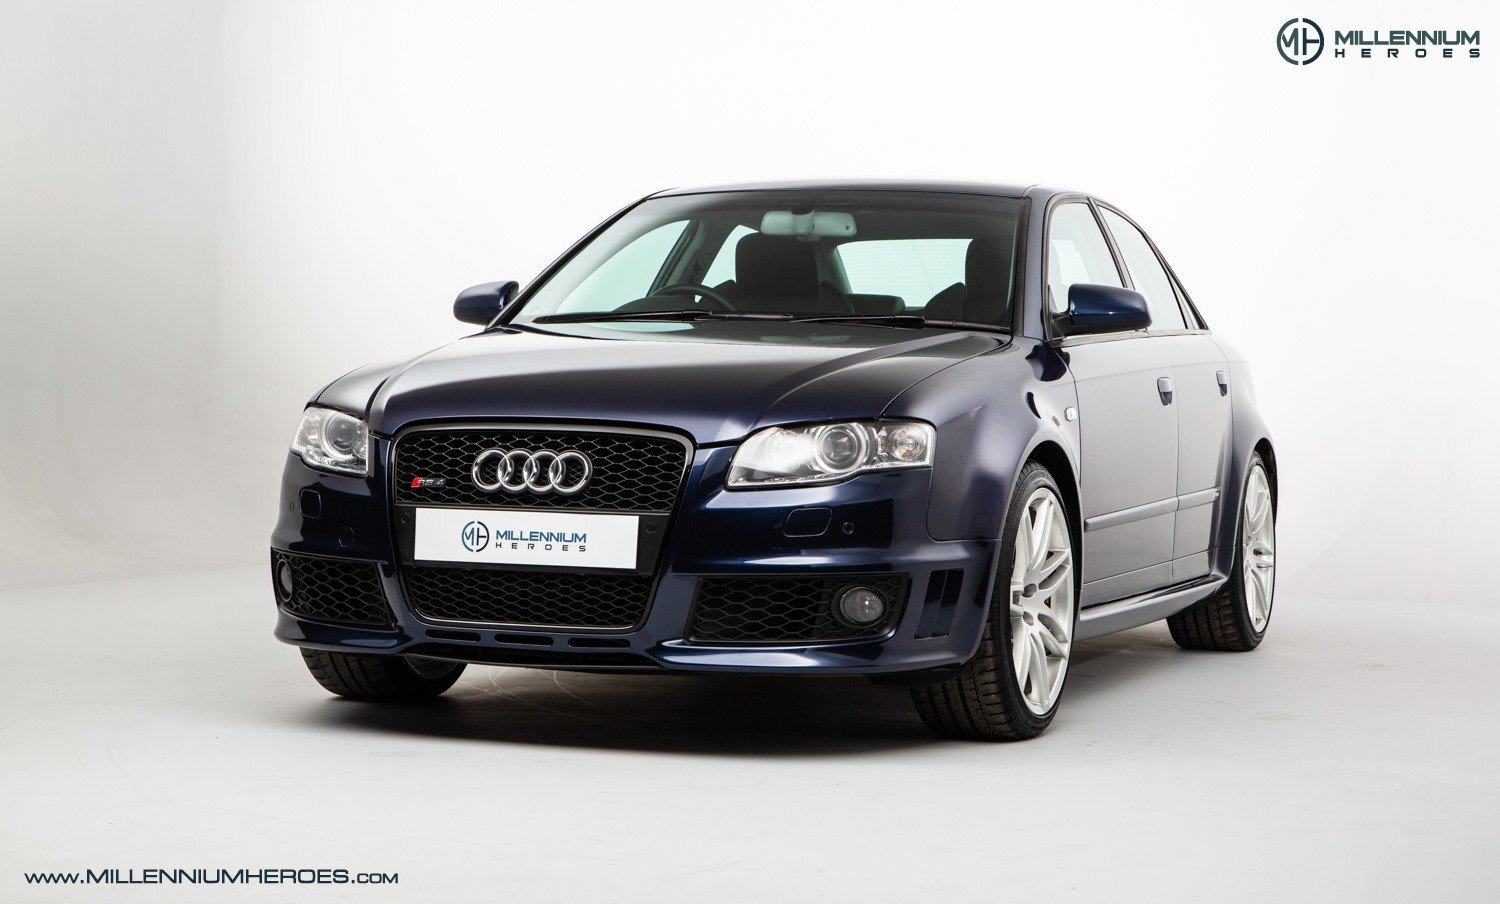 2007 AUDI B7 RS4 SALOON // EXCELLENT HISTORY // MUGELLO BLUE For Sale (picture 1 of 6)